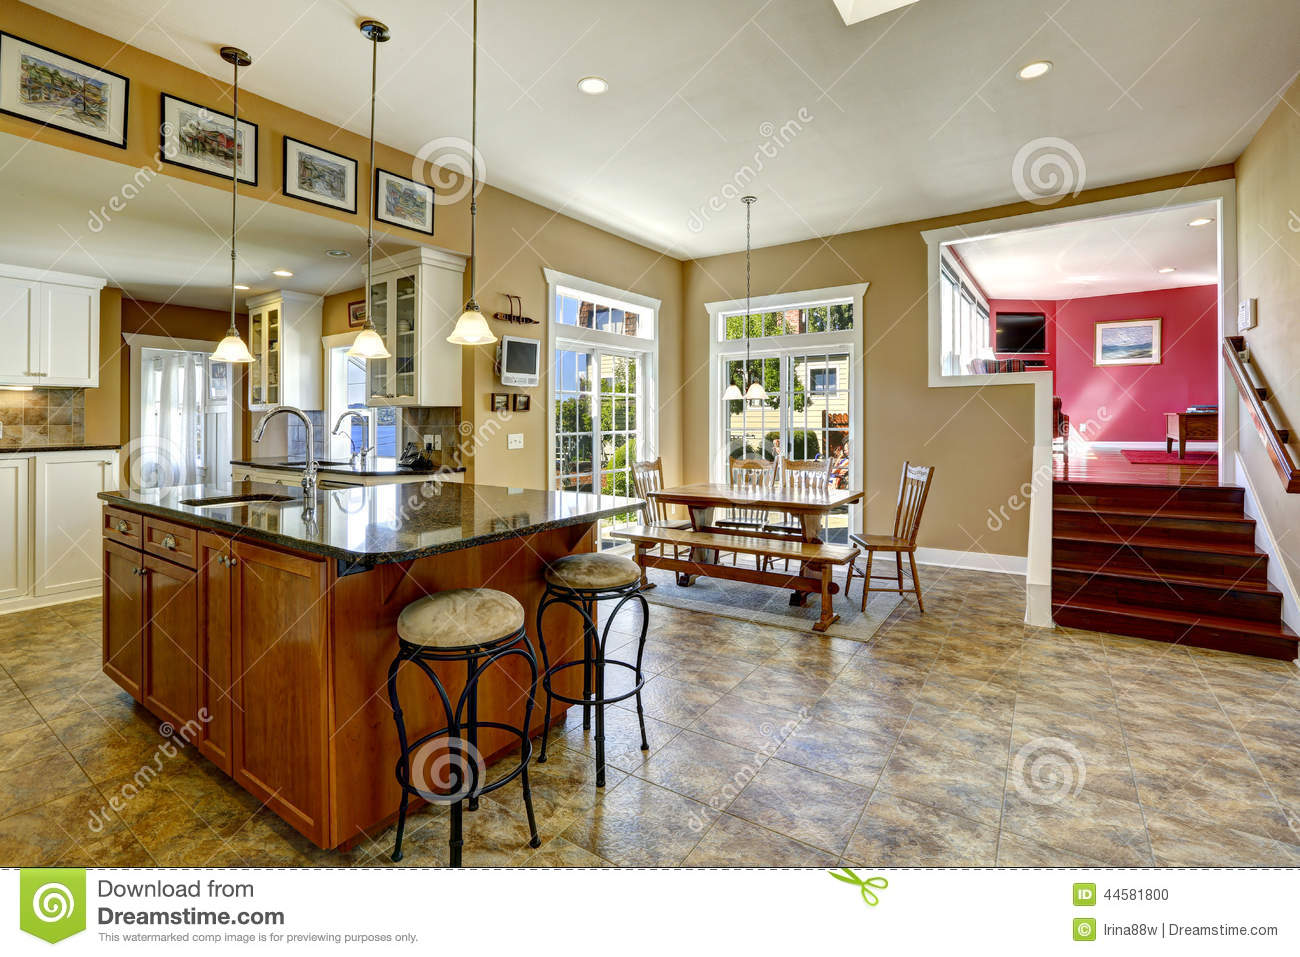 42 Best Images About Dream Dining Rooms And Kitchens On: Kitchen Room With Kitchen Island And Dining Table Stock